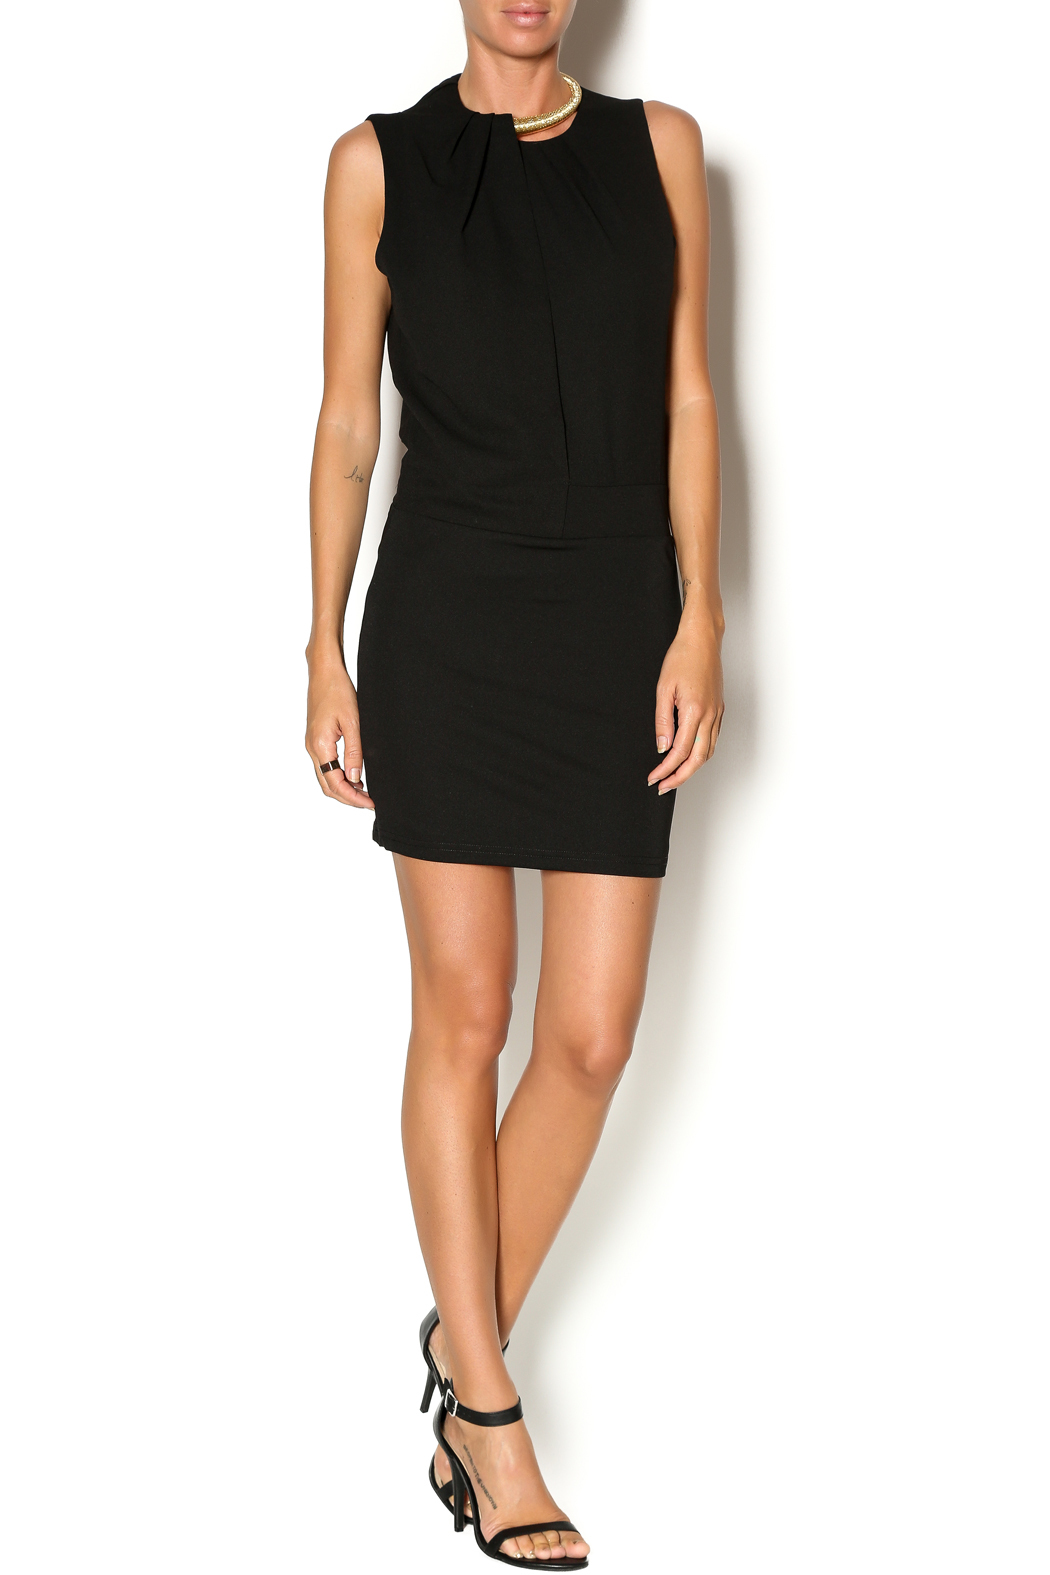 Find little black dress at ShopStyle. Shop the latest collection of little black dress from the most popular stores - all in one place.